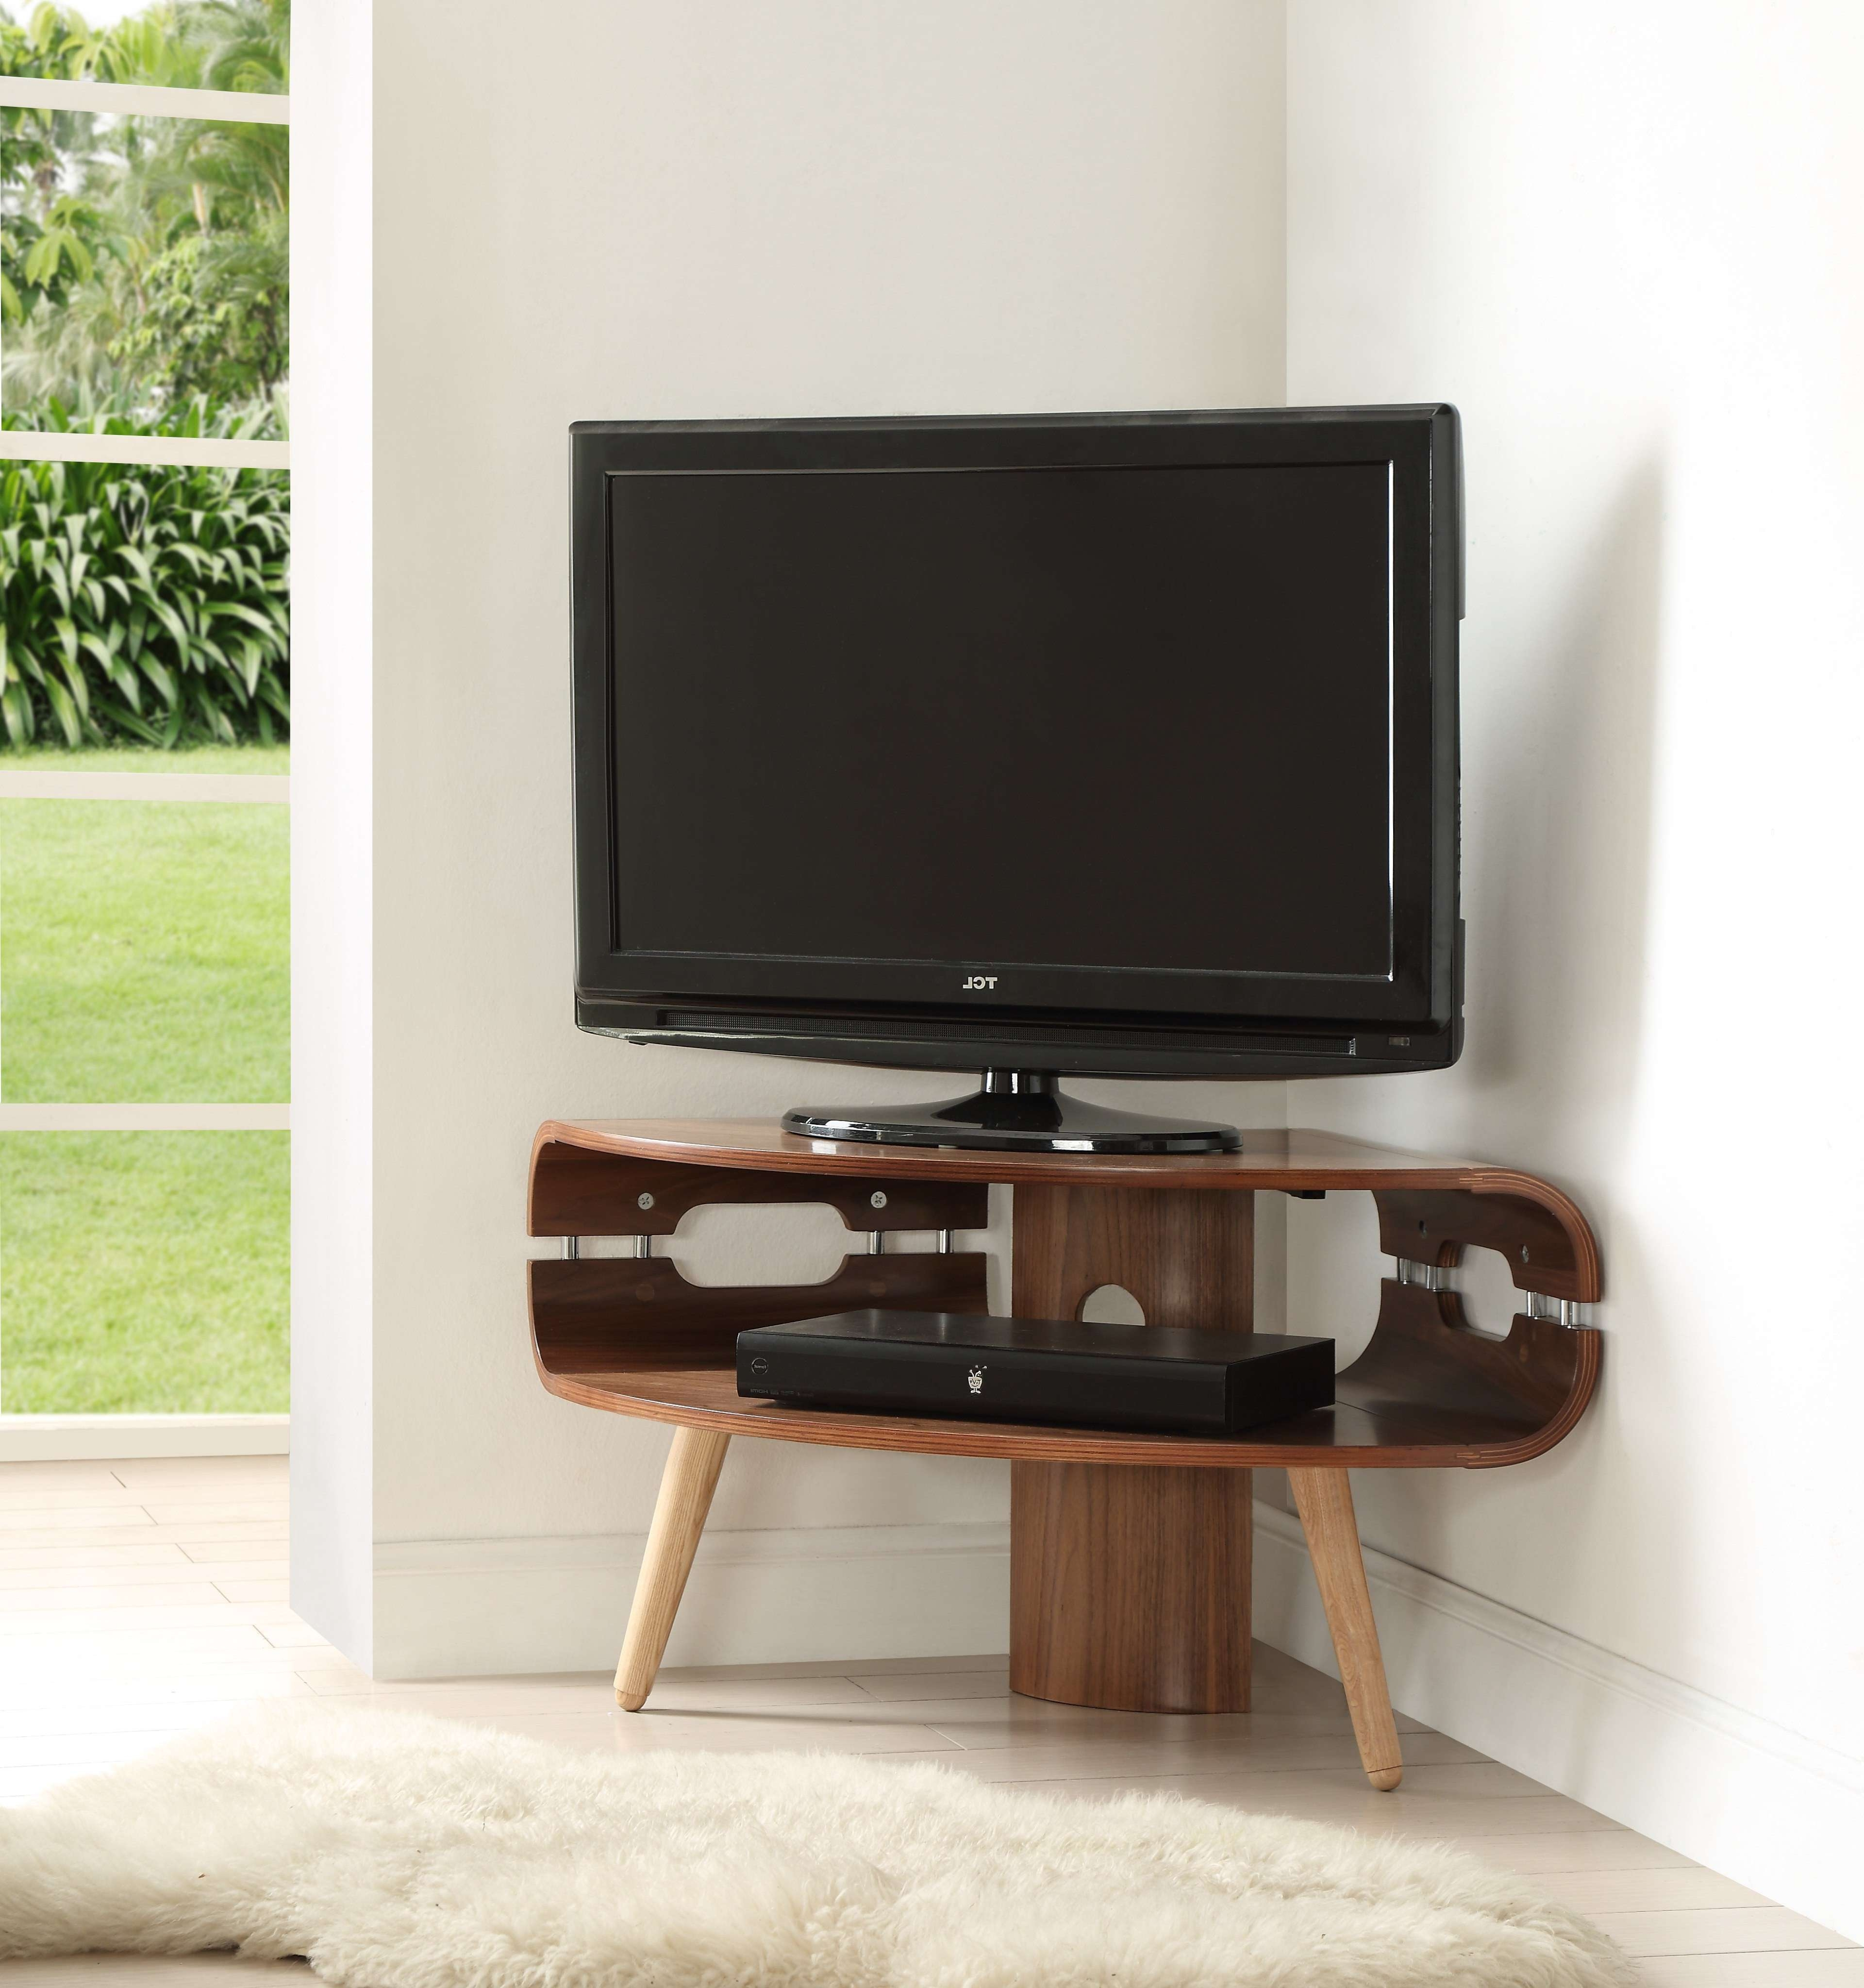 Bedroom Design : Fabulous Entertainment Center Corner Tv Unit Long Within 40 Inch Corner Tv Stands (View 7 of 15)